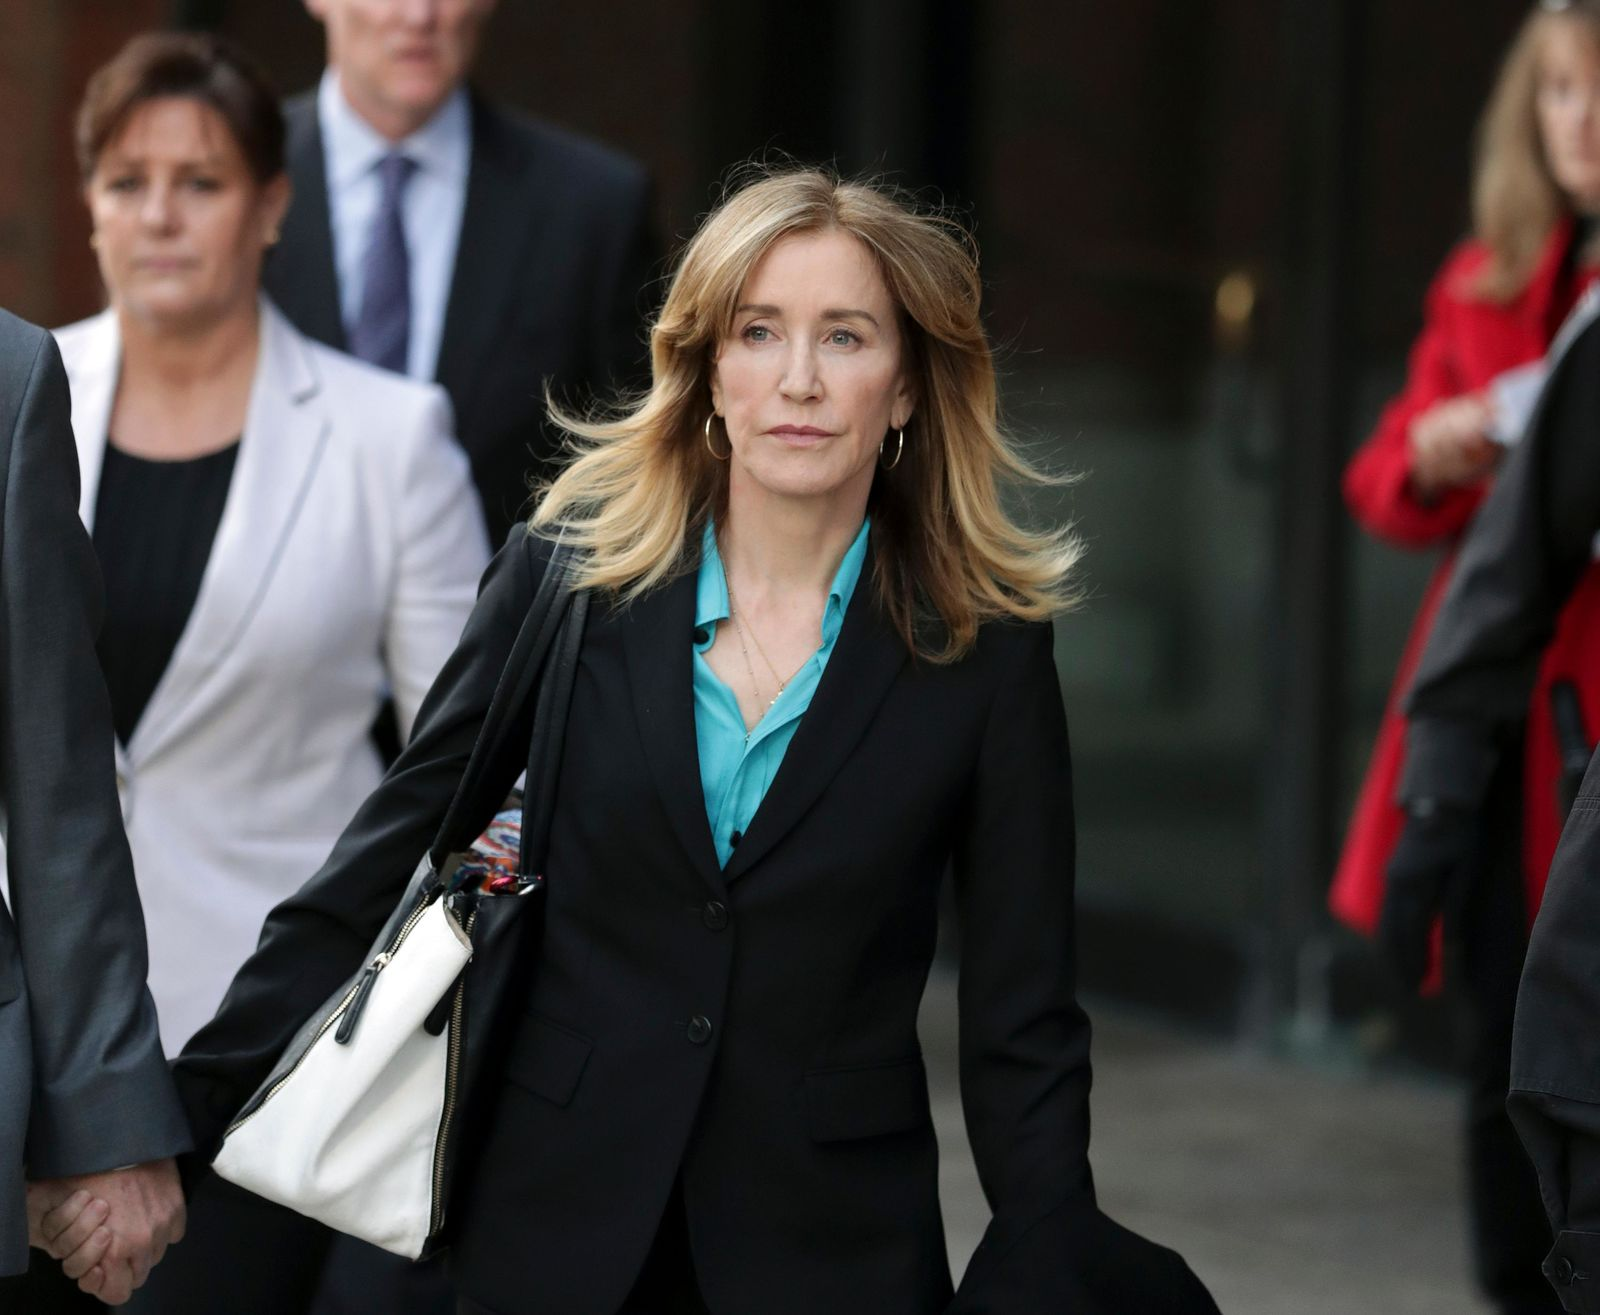 FILE - This April 3, 2019 file photo shows actress Felicity Huffman departing federal court in Boston after facing charges in a nationwide college admissions bribery scandal. (AP Photos/Charles Krupa, File)